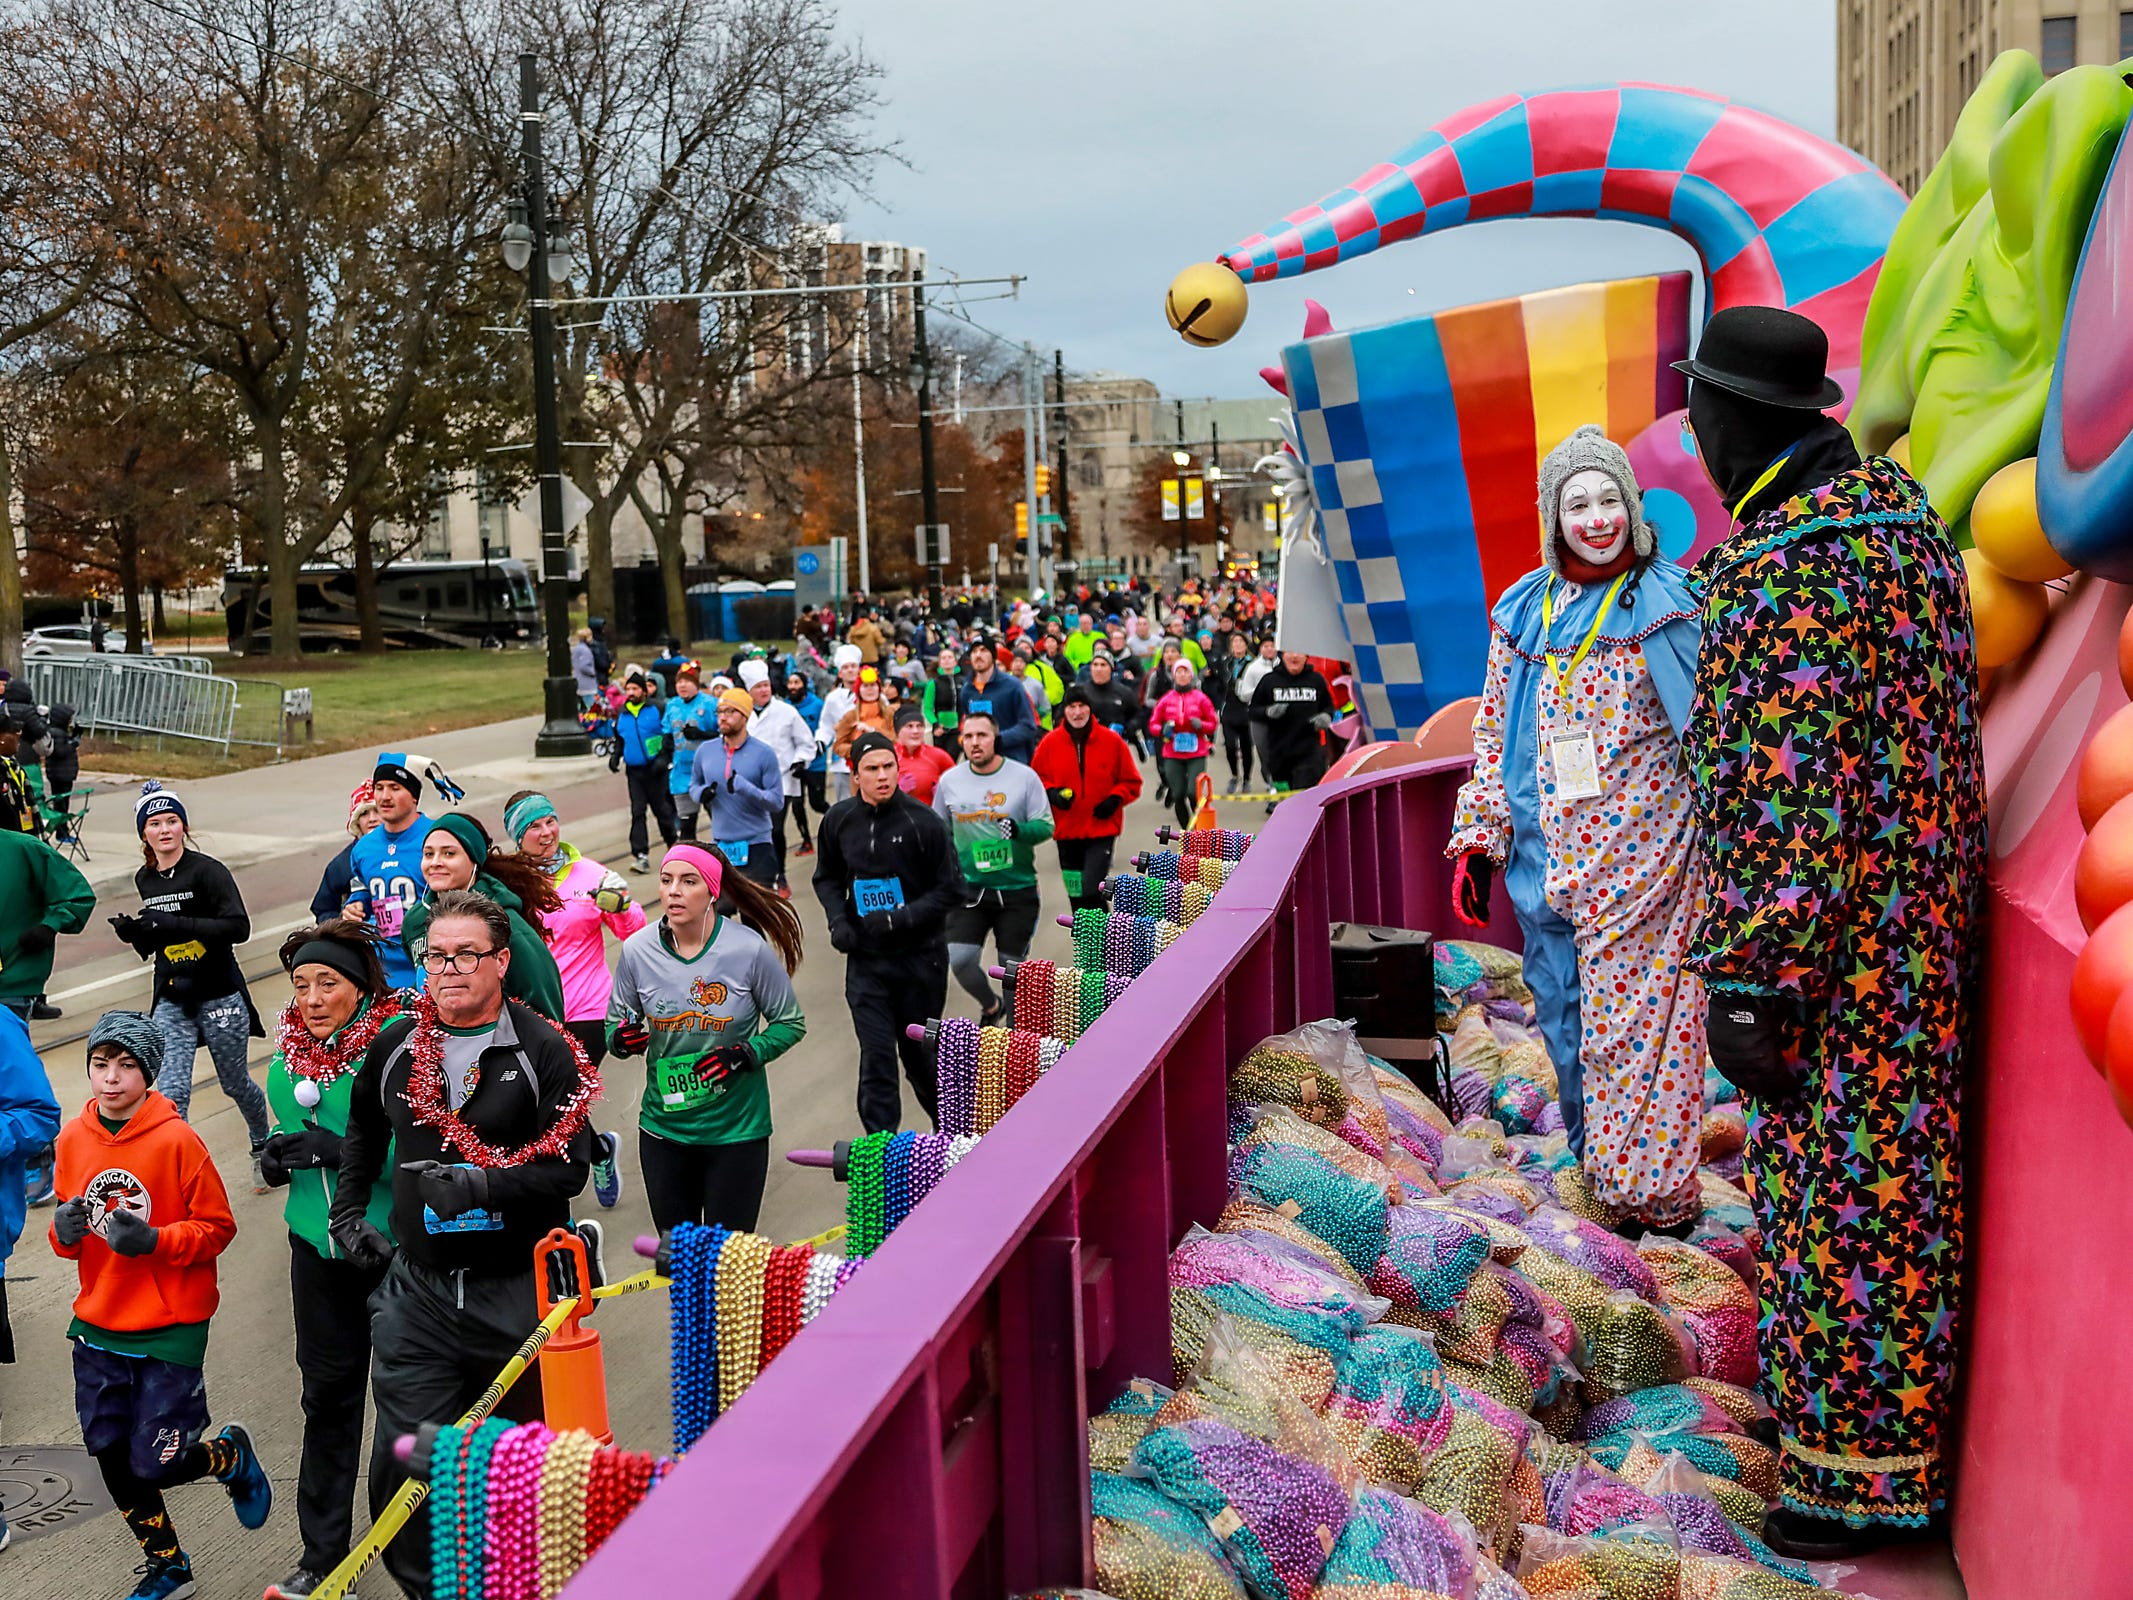 Runners participate in the Turkey Trot before the start of America's Thanksgiving Parade while clowns, Rosie Feinbloom, 17, of Bloomfield Hills and her father look on, in Detroit on Thursday, Nov. 22, 2018.